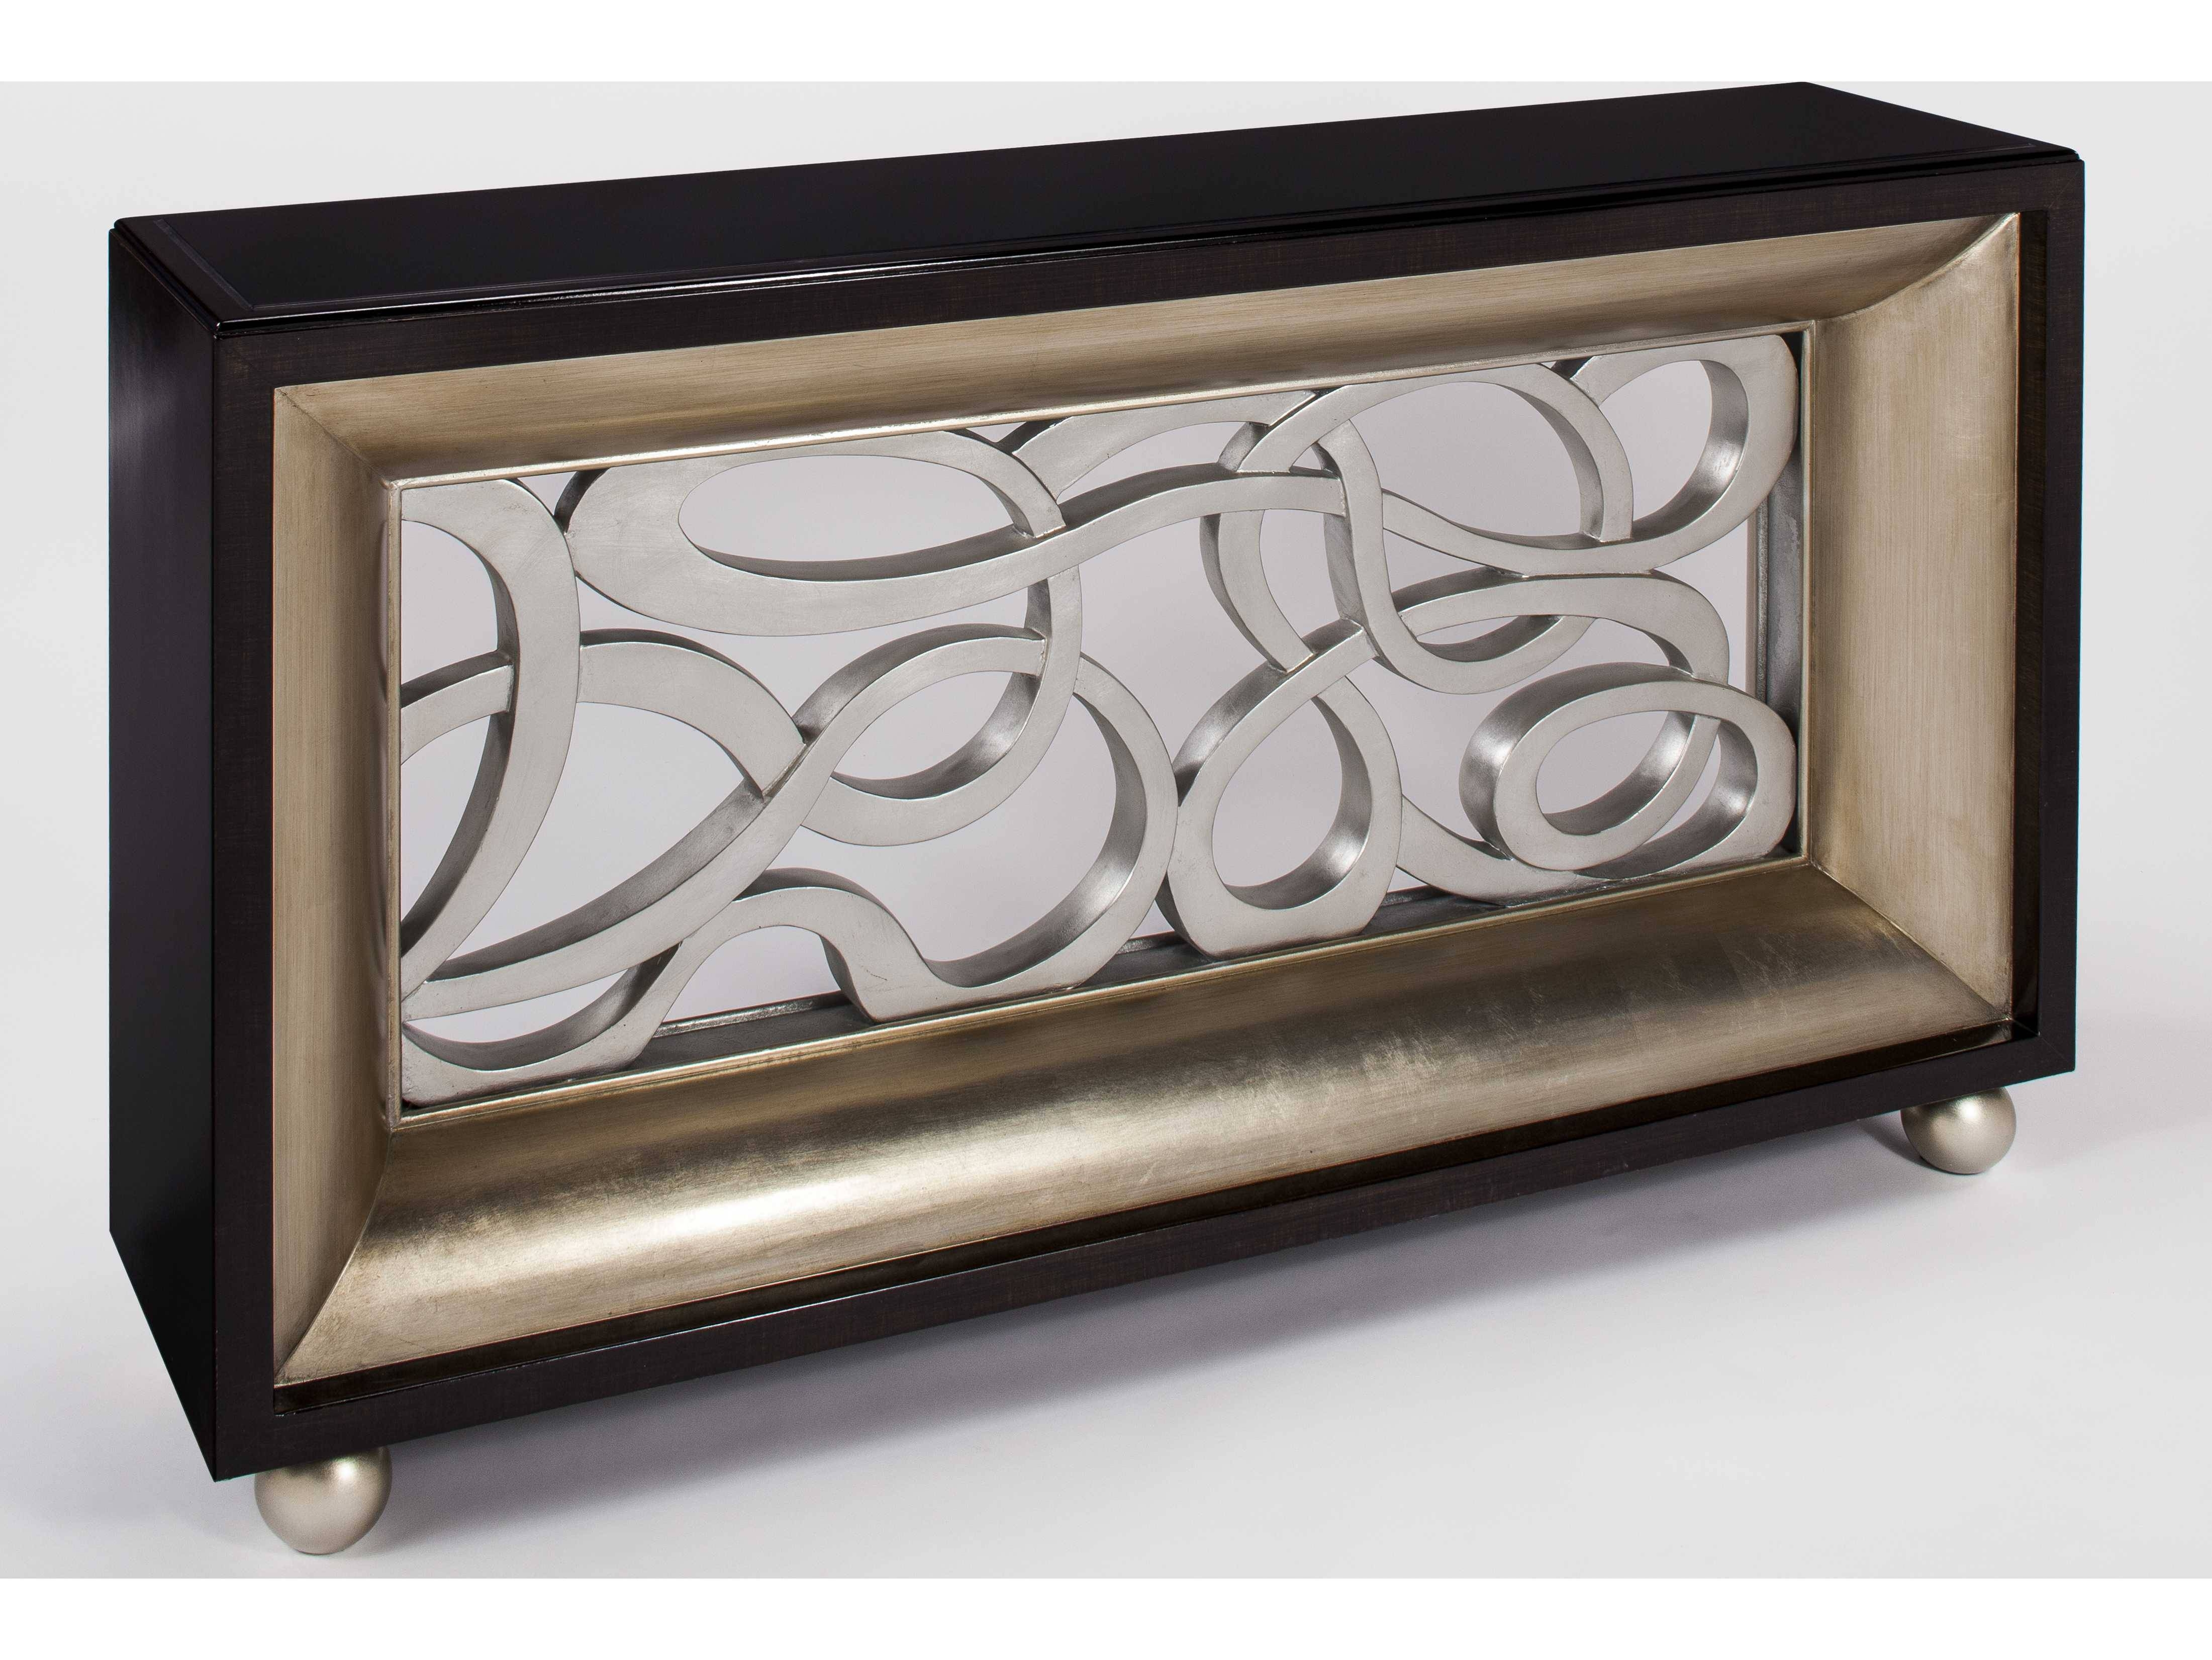 Buffet Server Tables & Sideboards For Sale | Luxedecor in Metal Sideboards (Image 2 of 30)